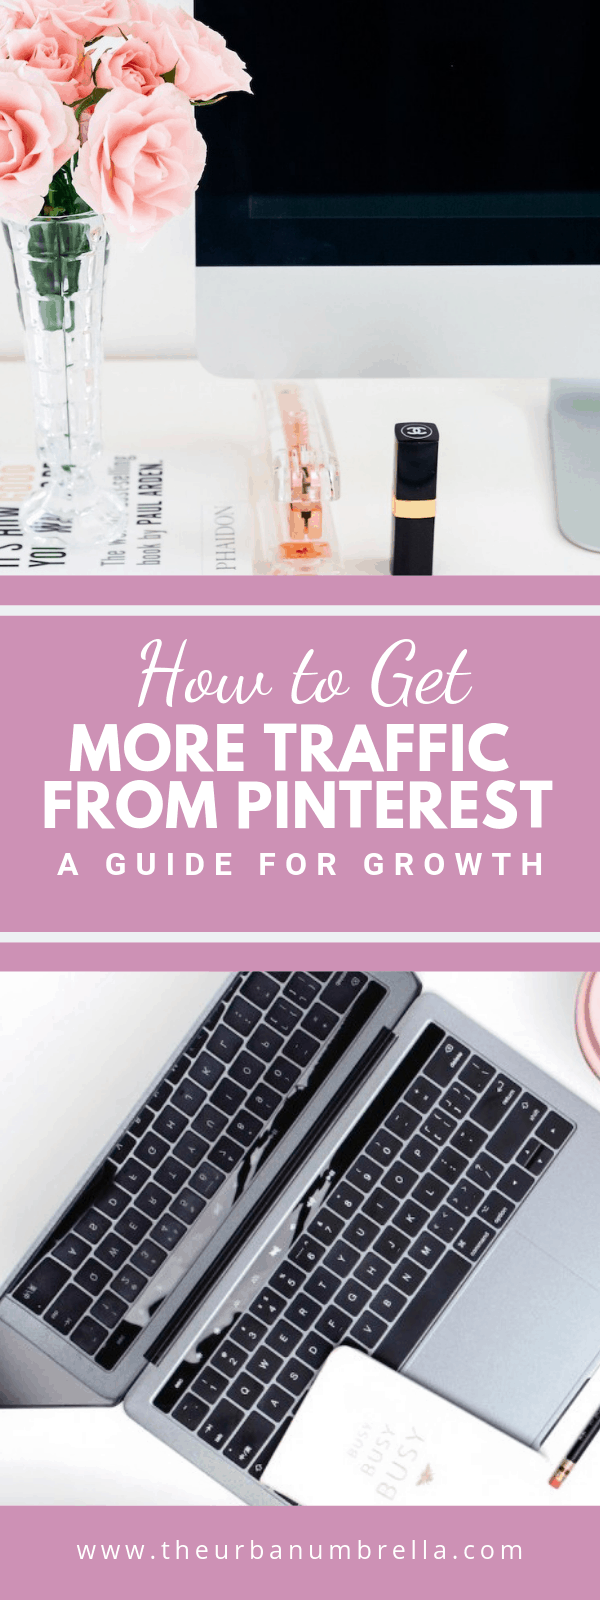 How to Get More Traffic Using Pinterest